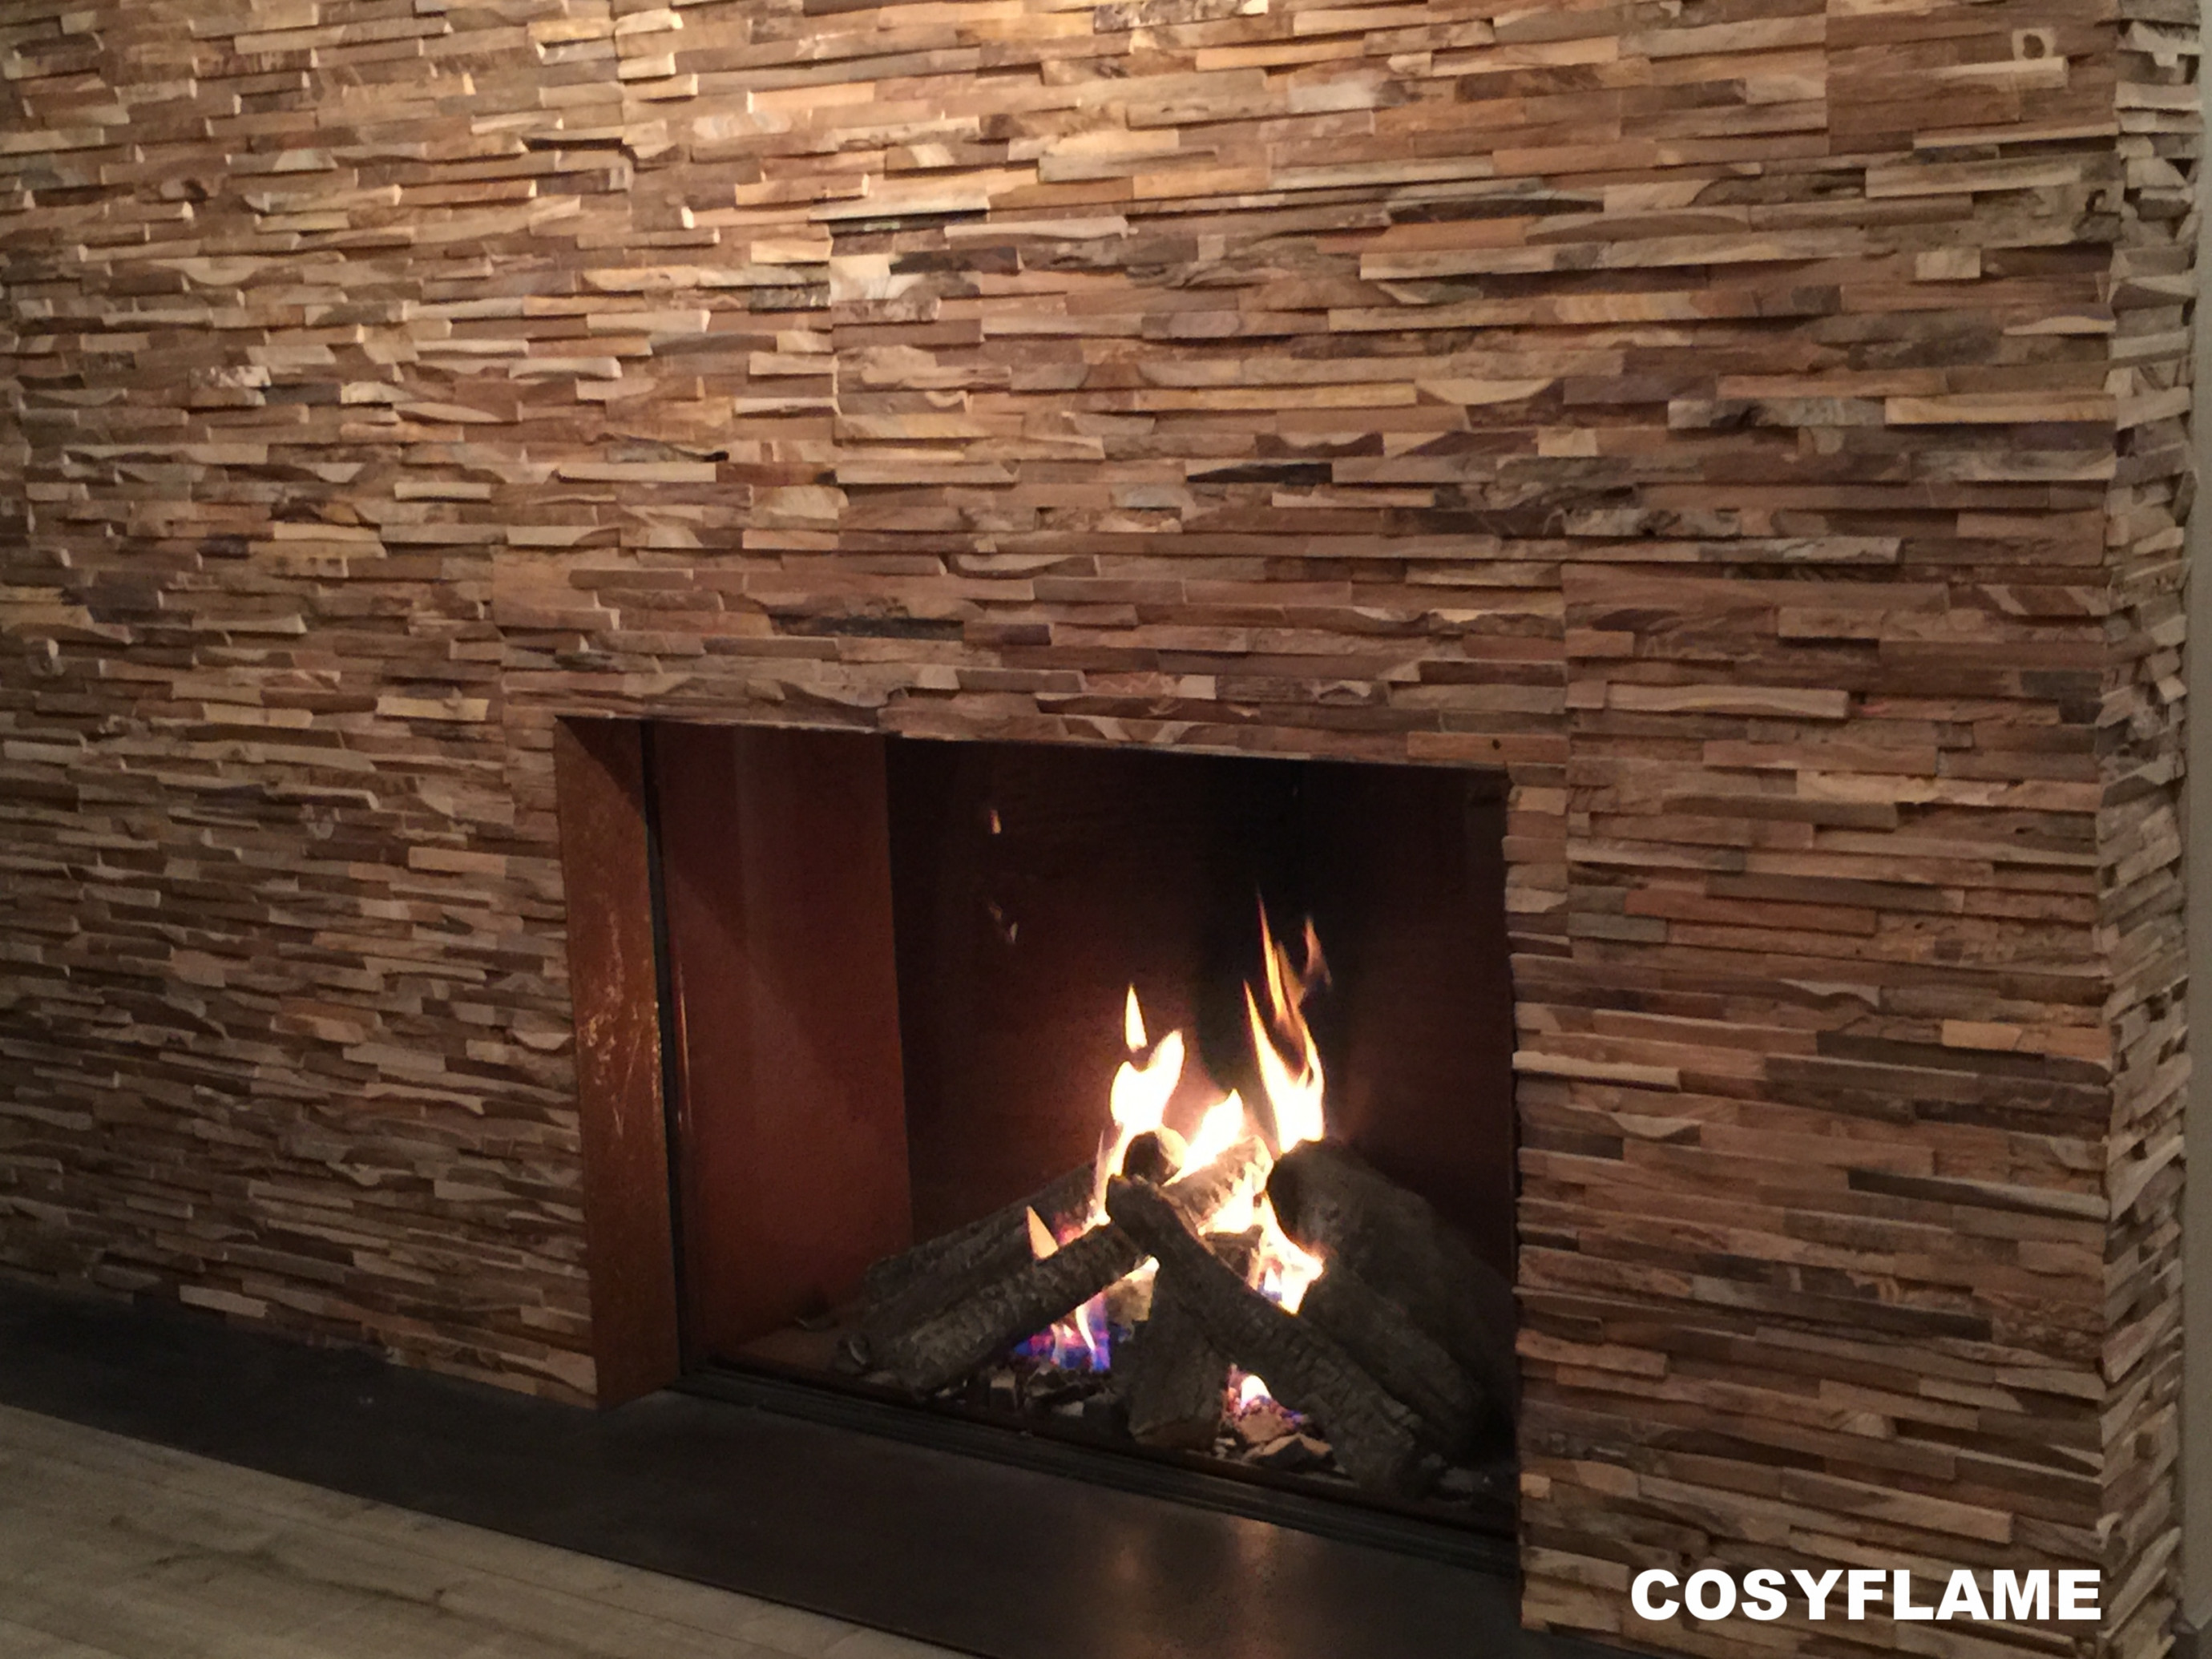 Cosyflame-Corten-file1-9.jpeg